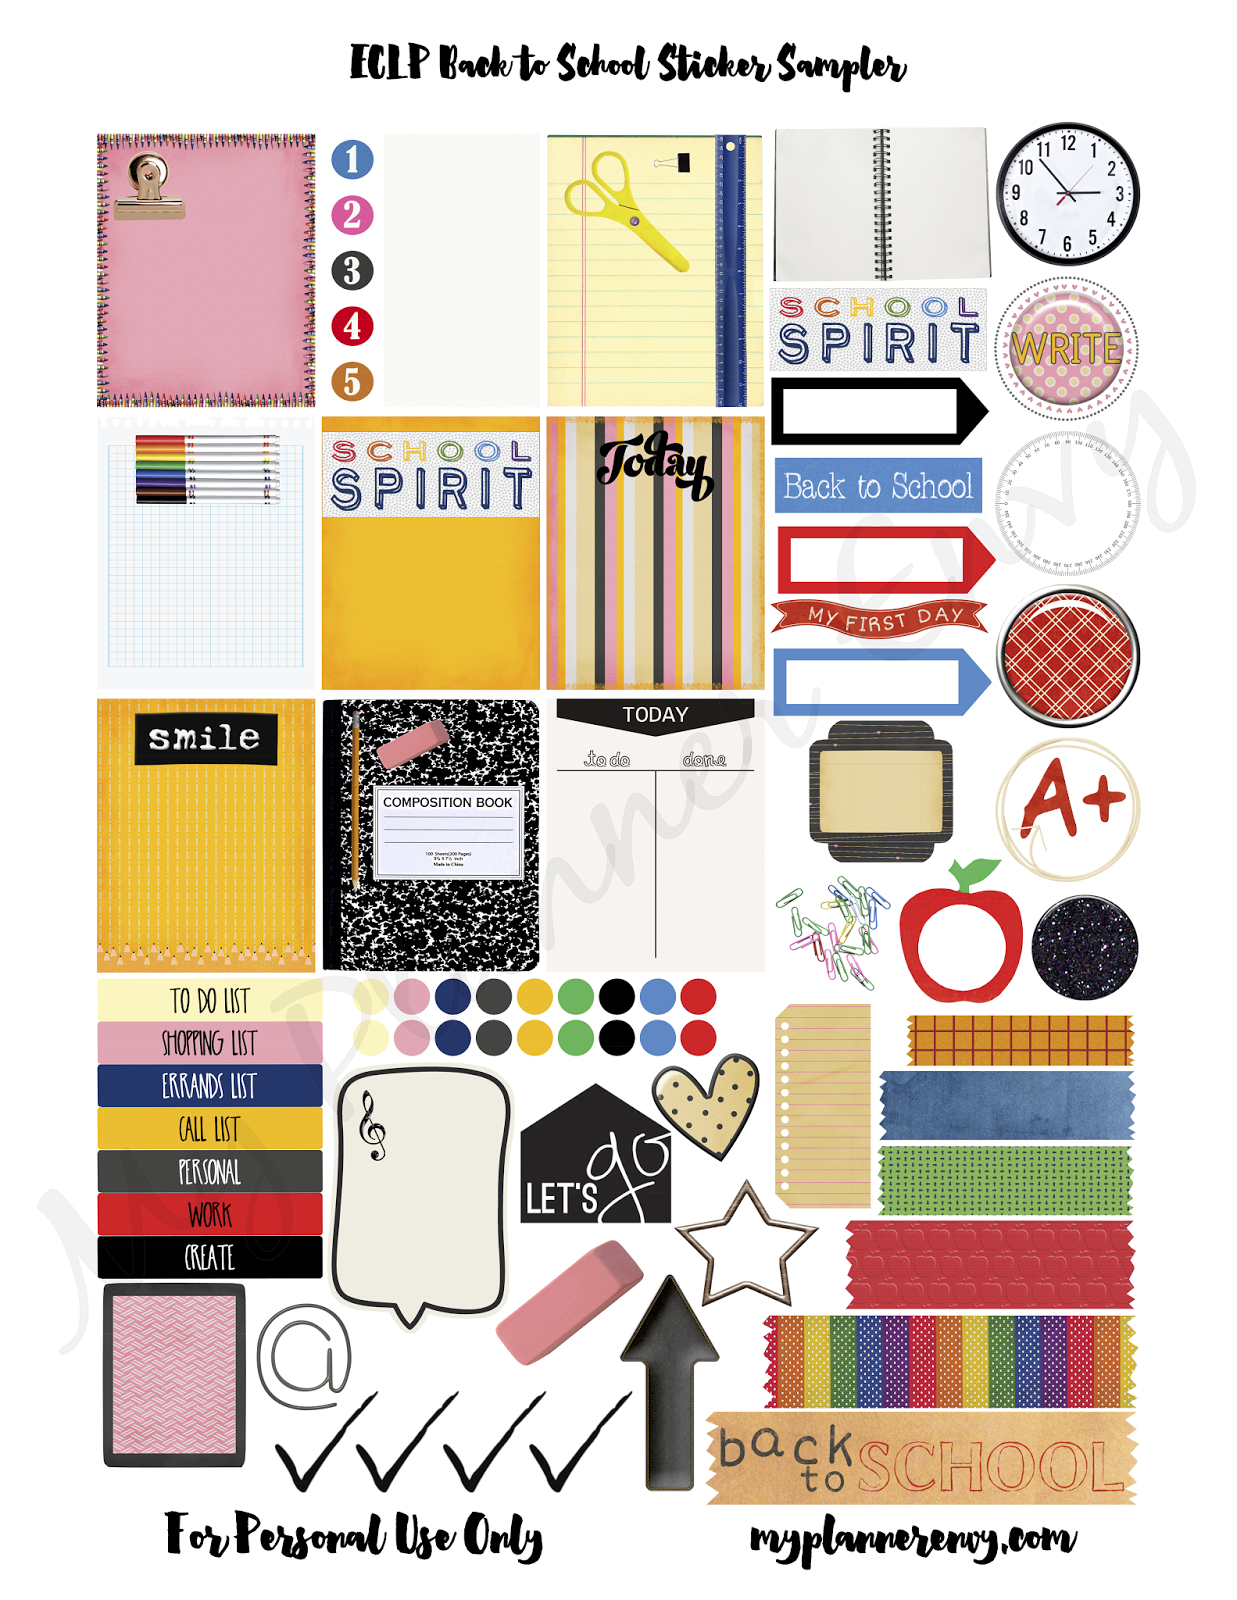 ... to School Sticker Sampler - Free Planner Printable | My Planner Envy